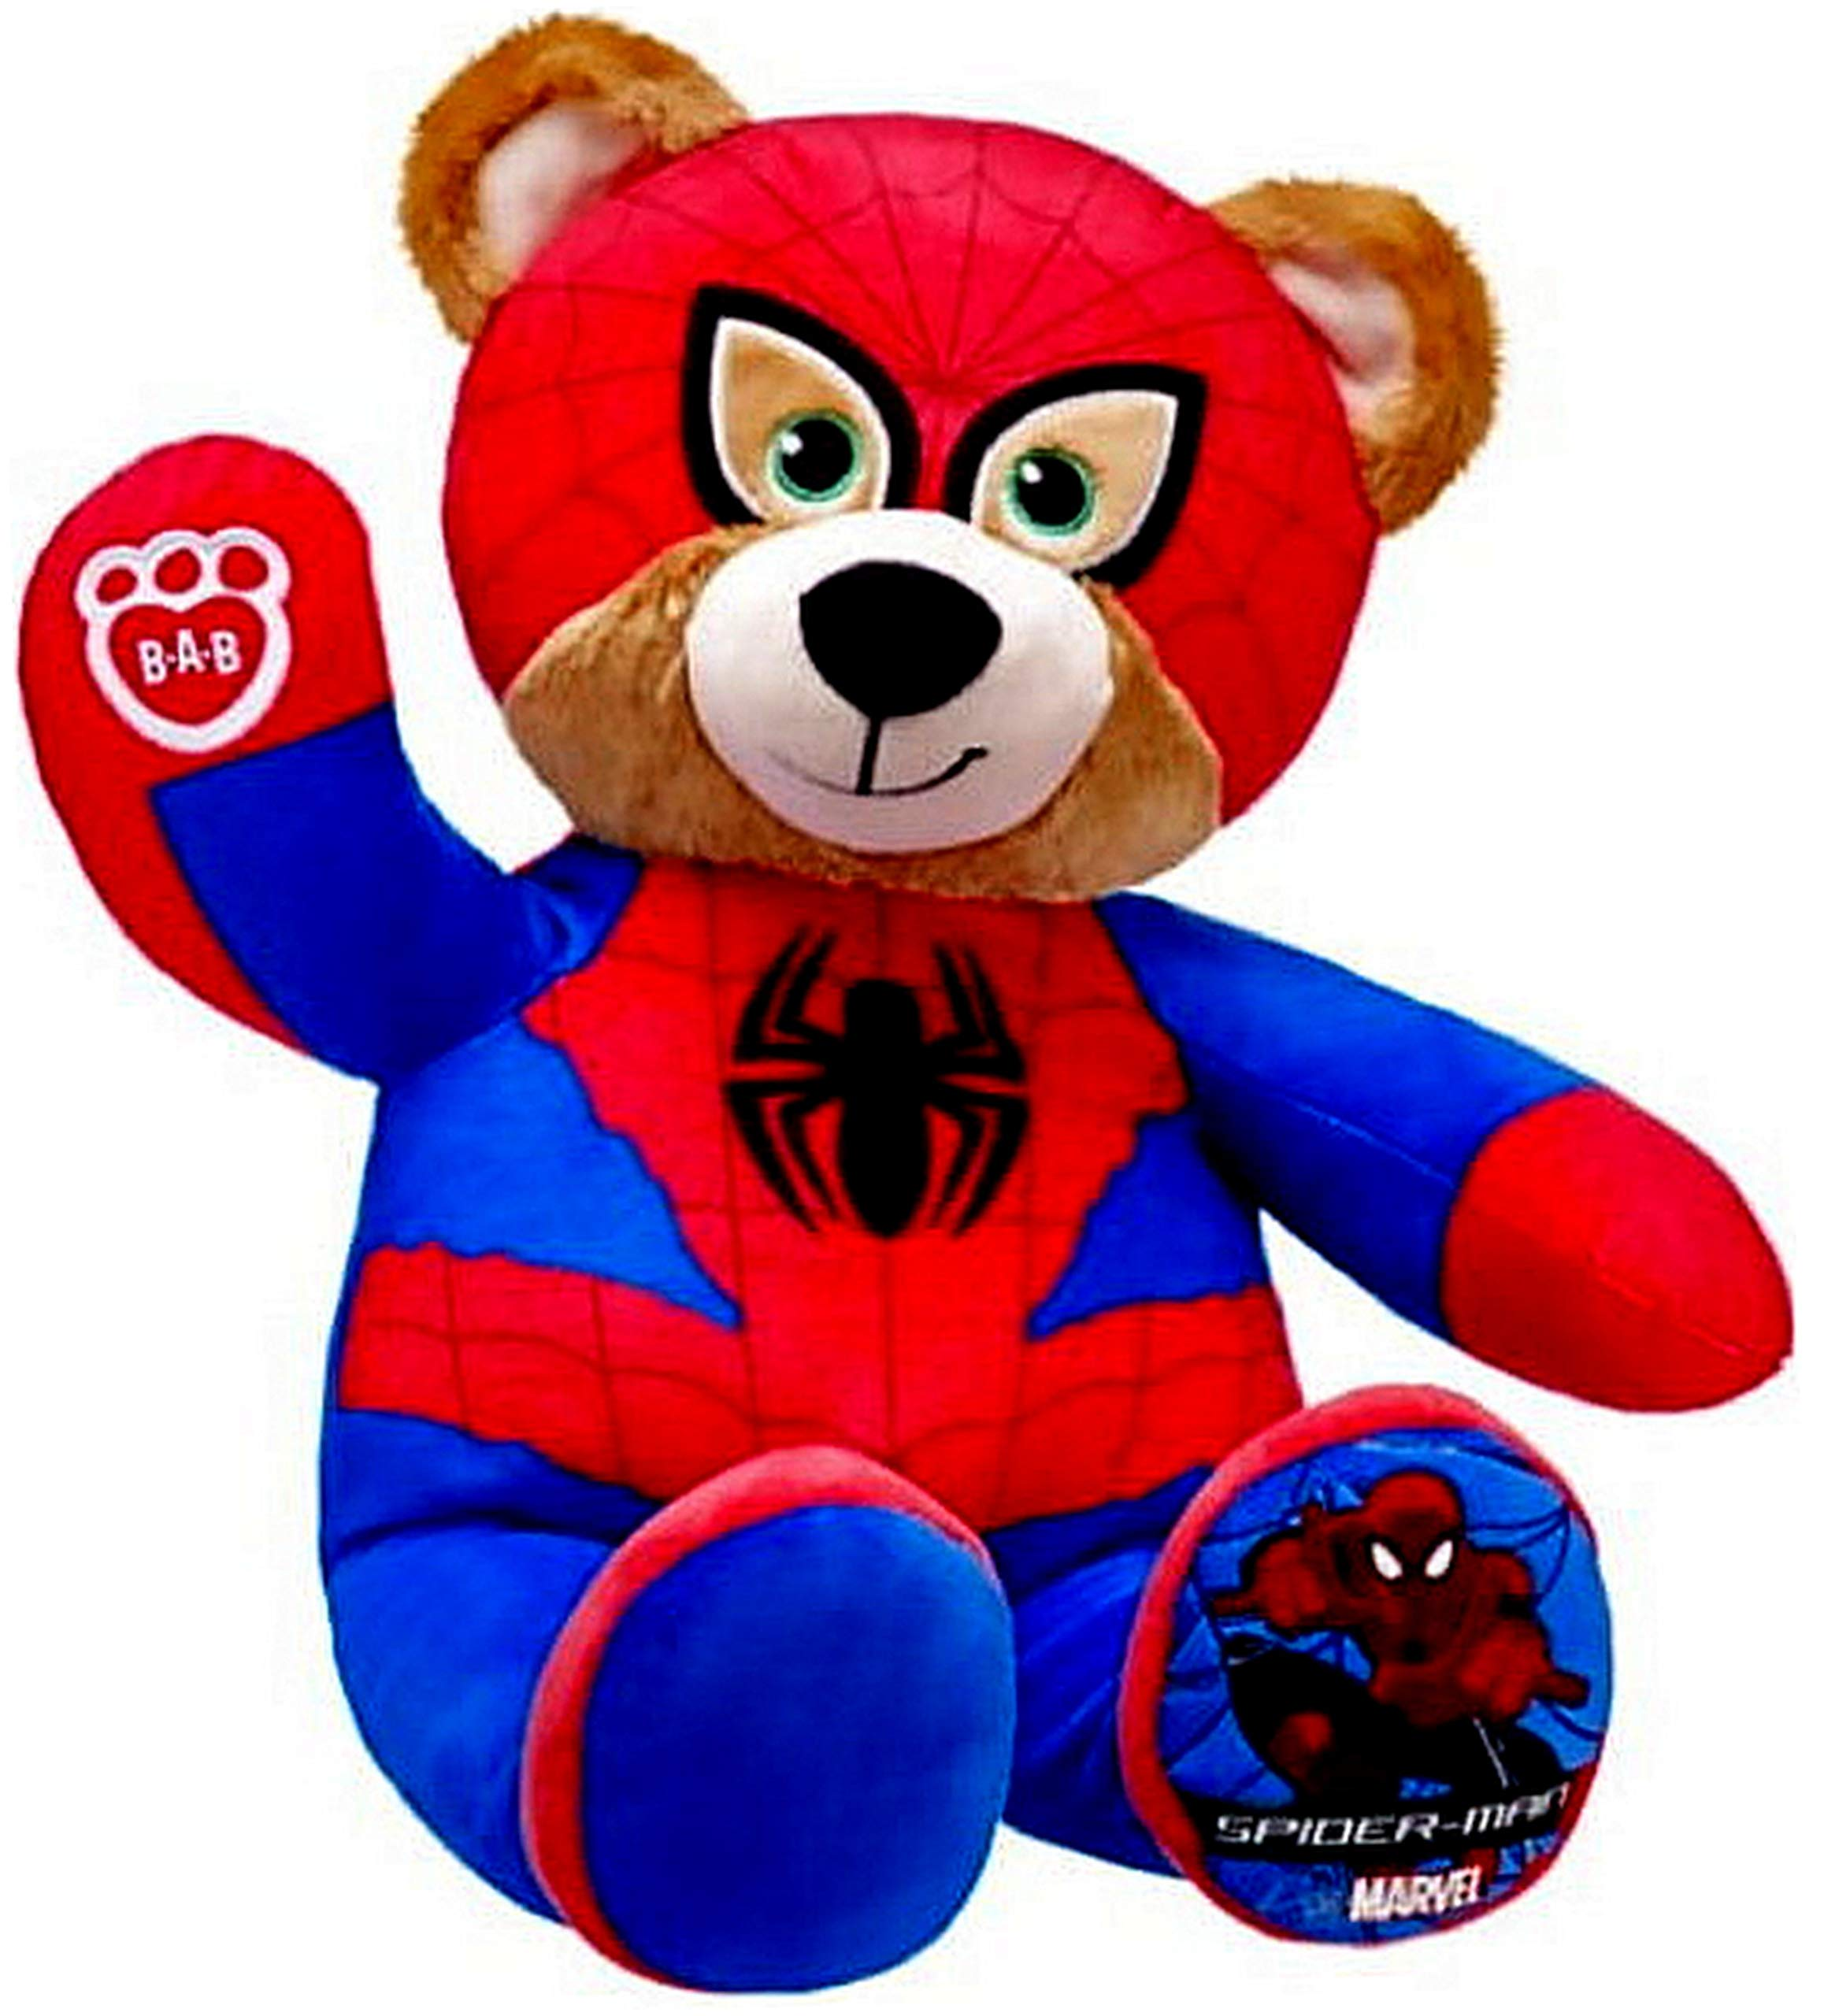 Build a Bear Workshop Spiderman Marvel Superhero Teddy Bear 16'' Plush Toy by BABW Stuffed with Hugs and Good Wishes!